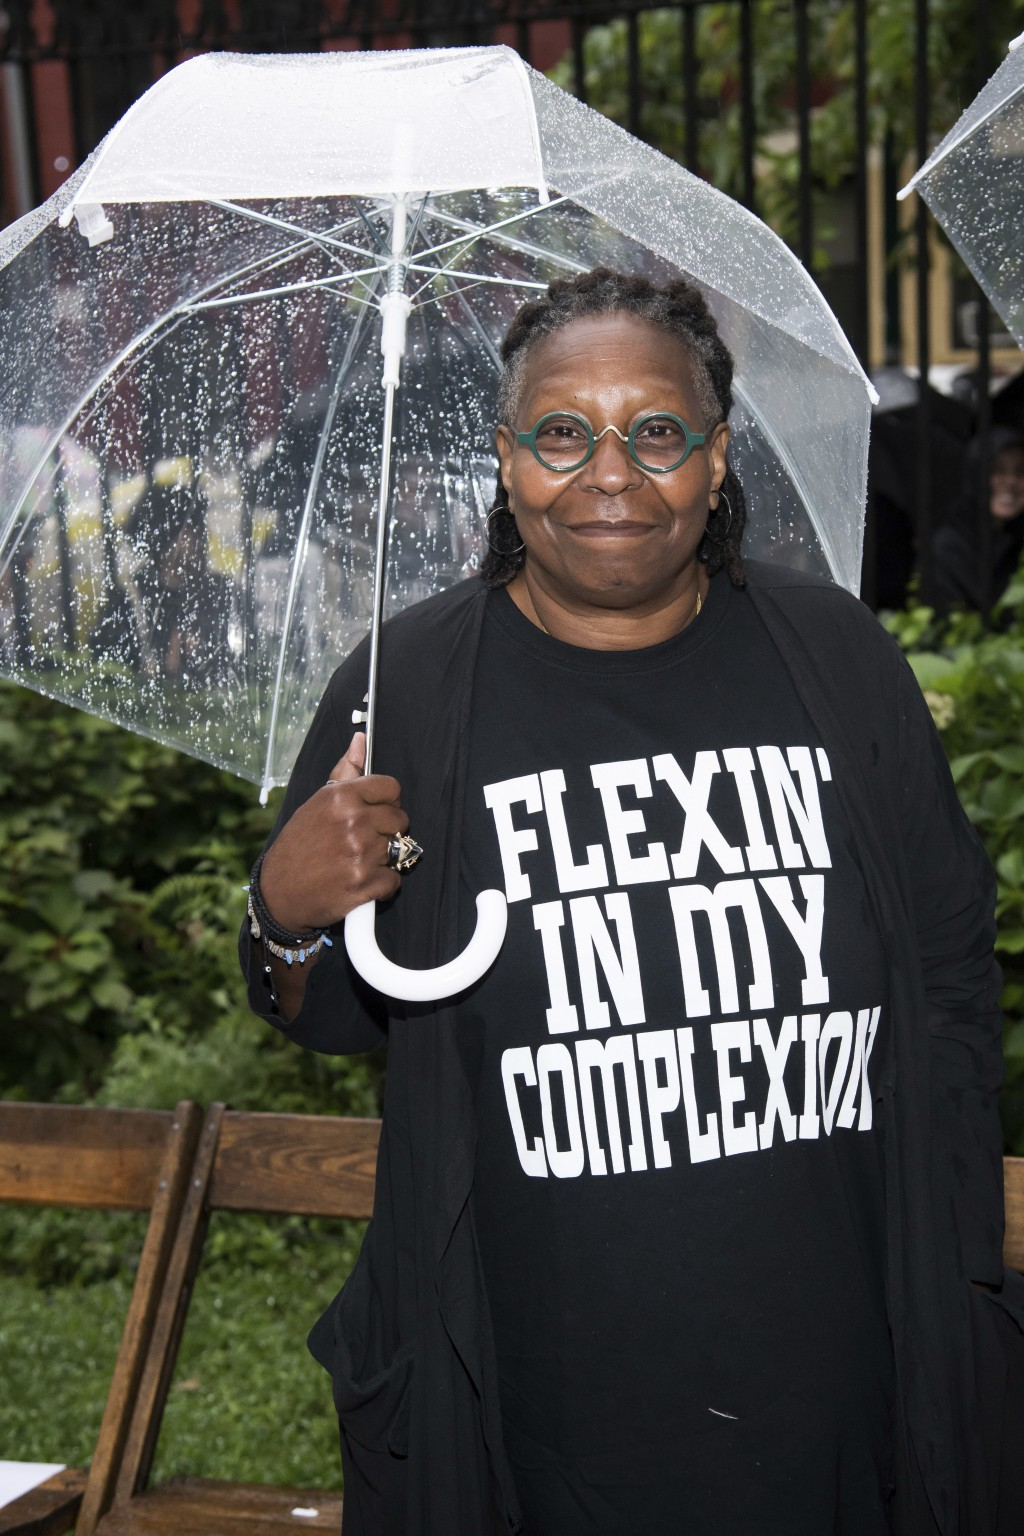 Whoopi Goldberg attends the Rodarte show, which was held outside in the rain, during Fashion Week on Sunday, Sept. 9, 2018 in New York. (Photo by Char